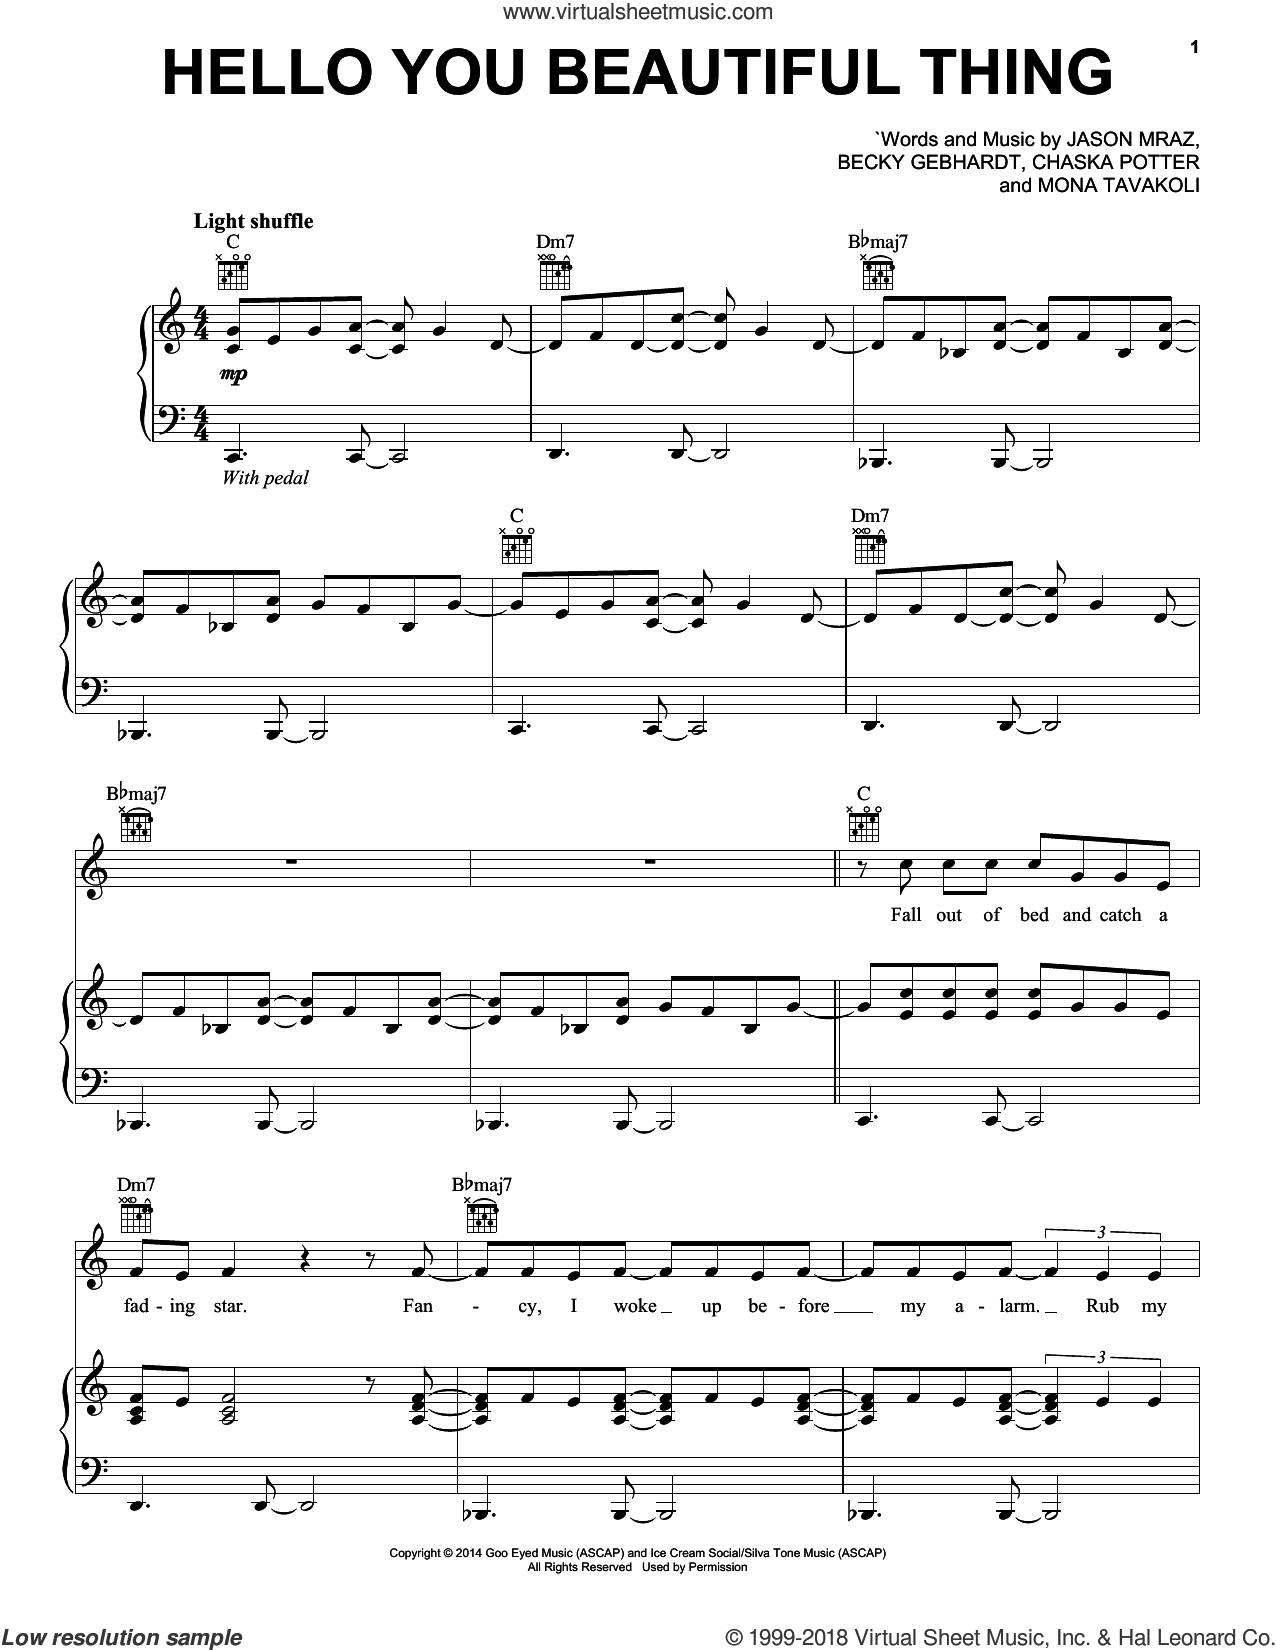 Hello You Beautiful Thing sheet music for voice, piano or guitar by Mona Tavakoli